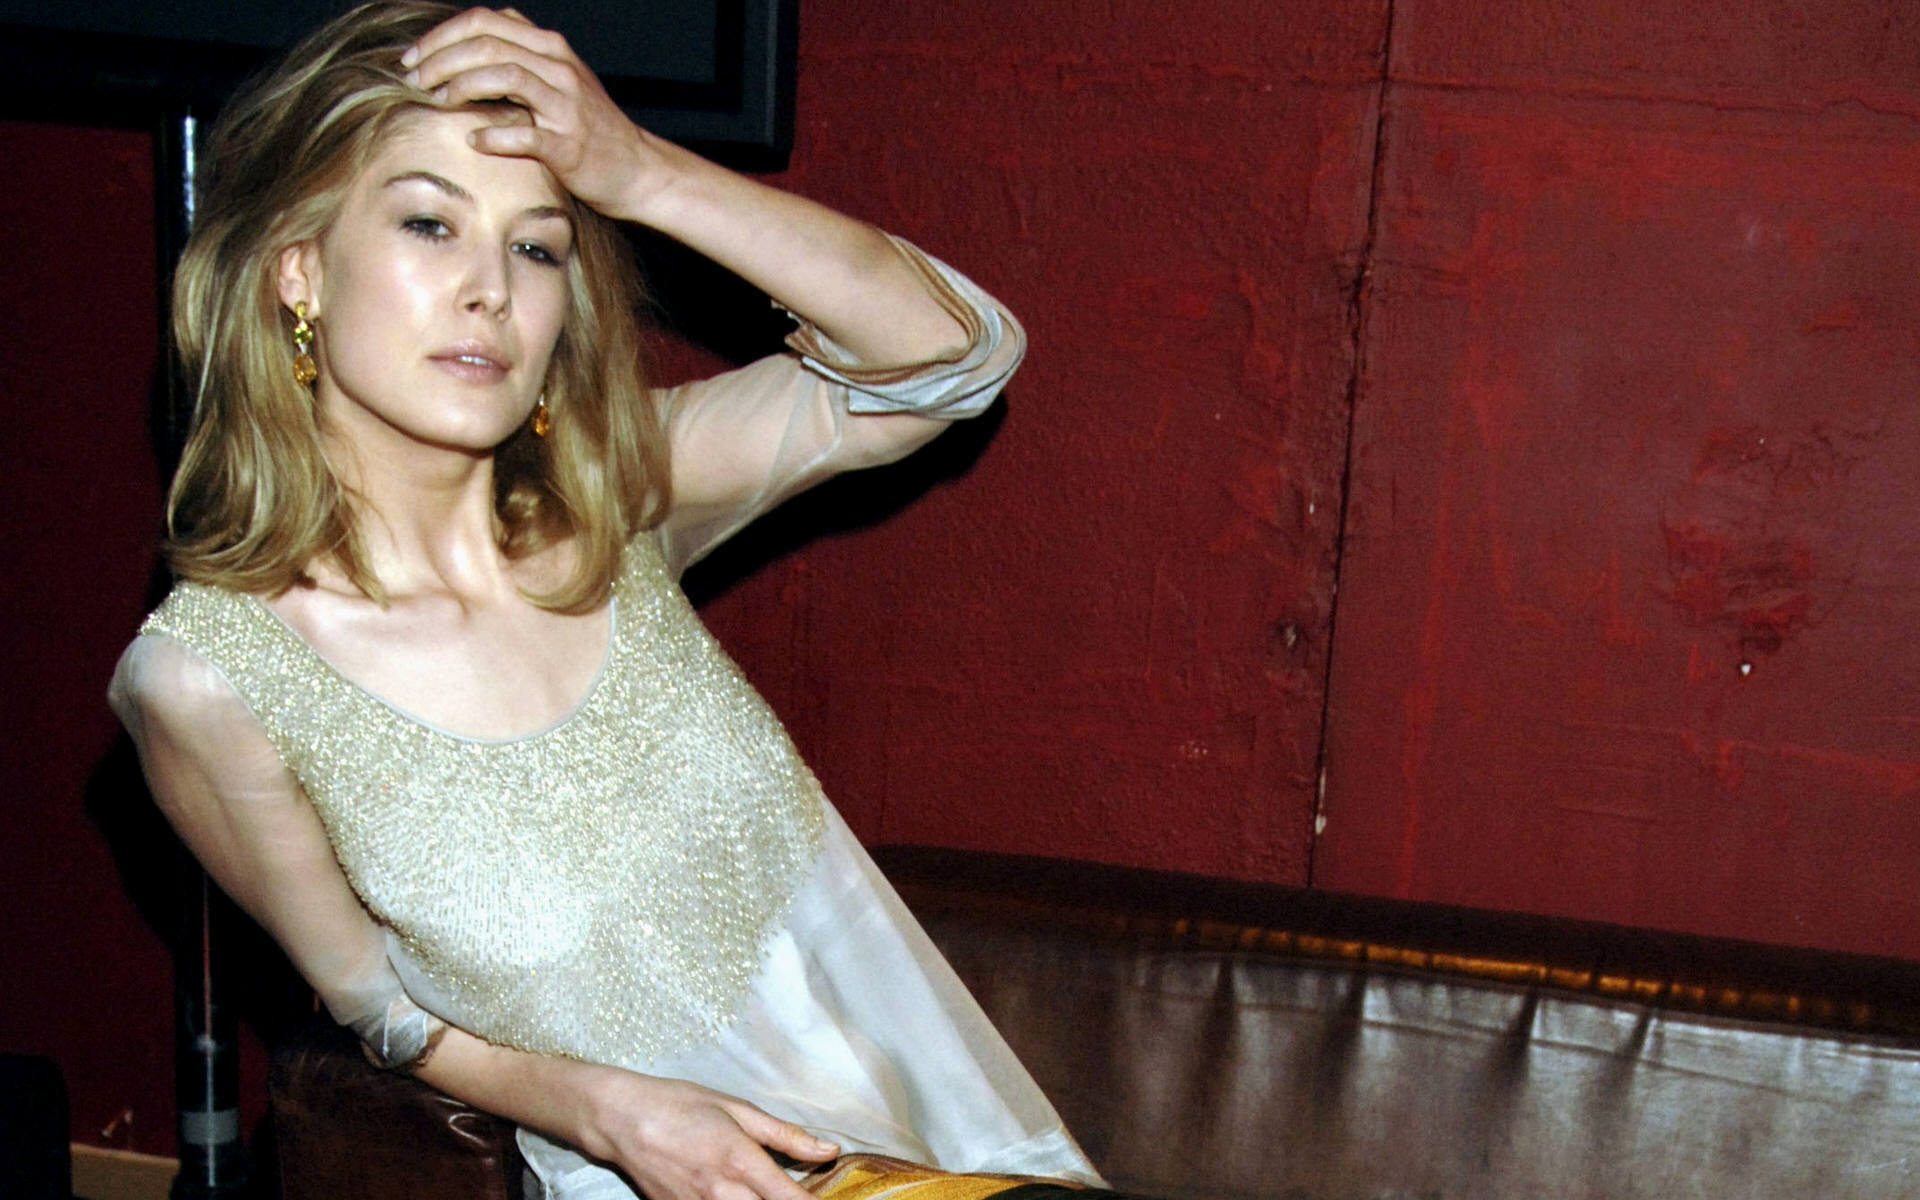 from Caden rosamund pike leaked images